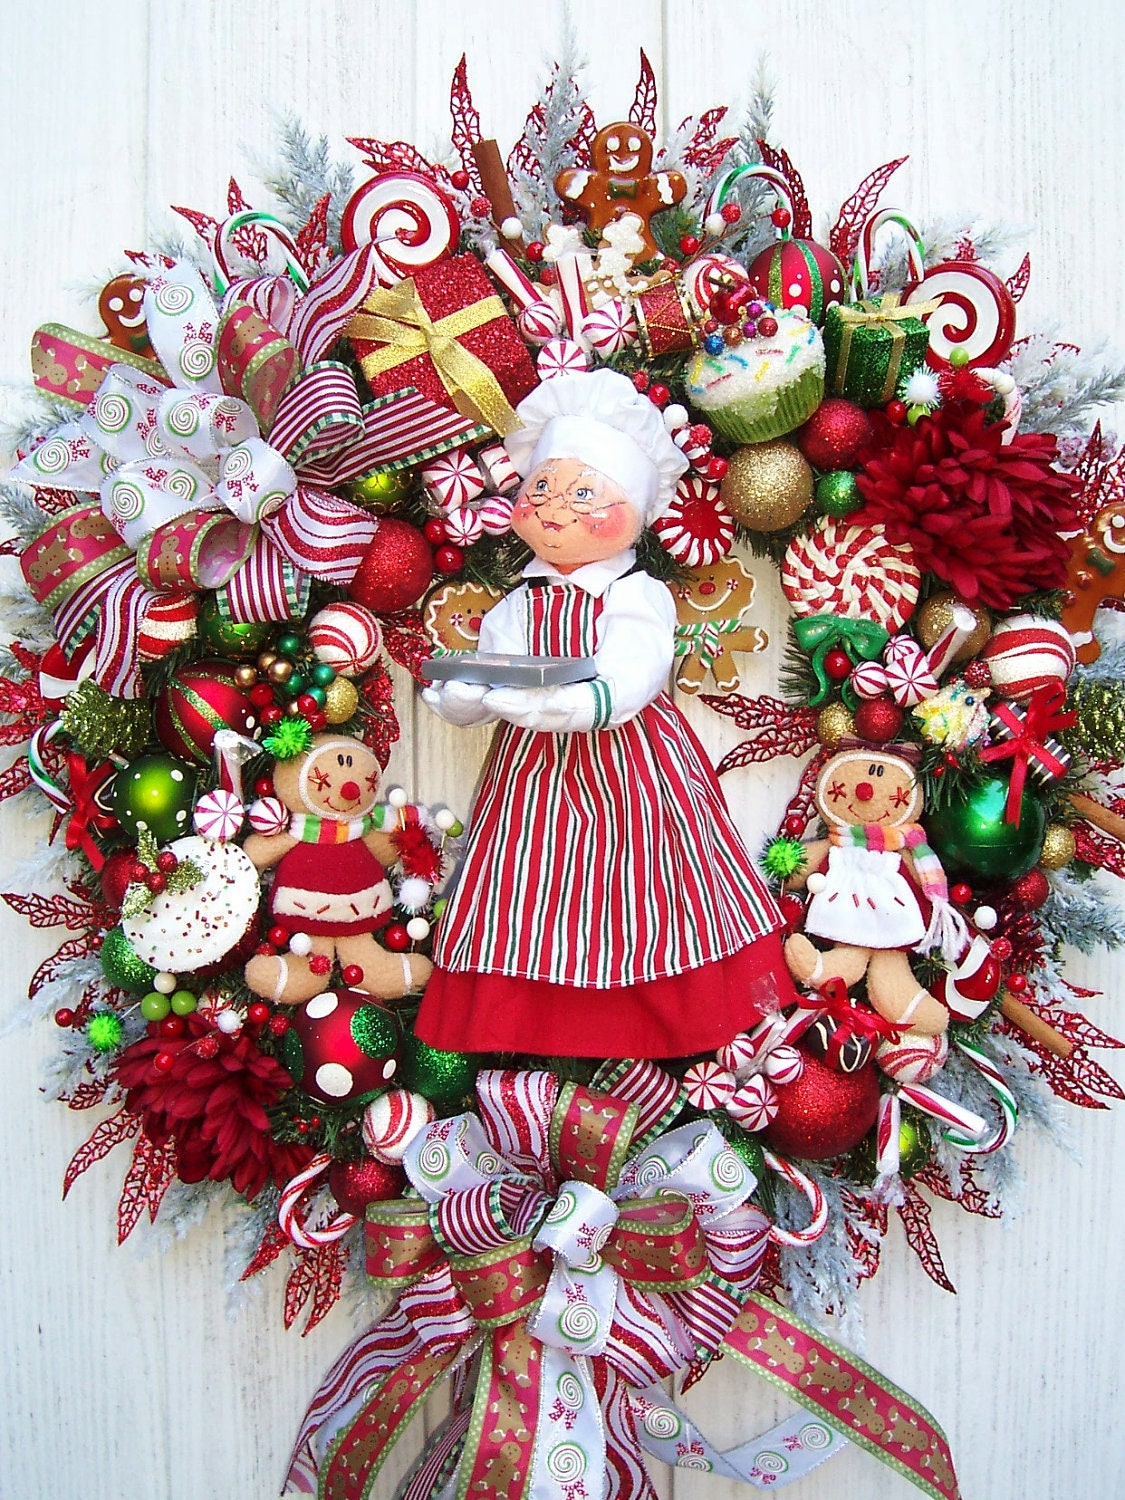 Baking Gingerbread With Mrs Clause Christmas Holiday Wreath